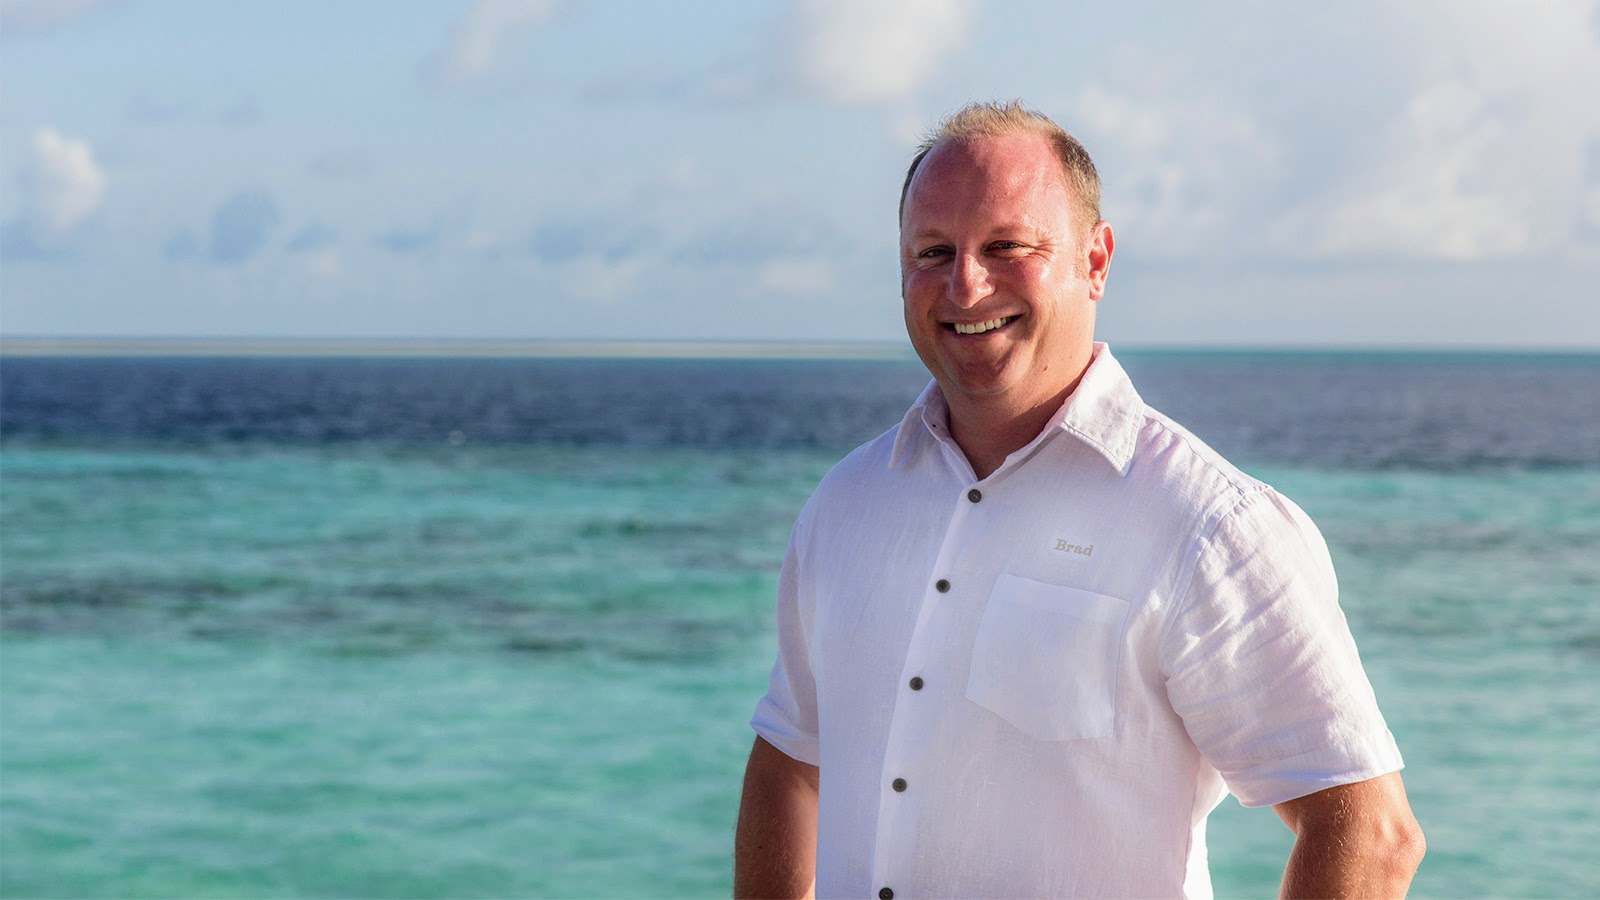 Brad-Calder-appointed-General-Manager-of-Hurawalhi-Maldives-1